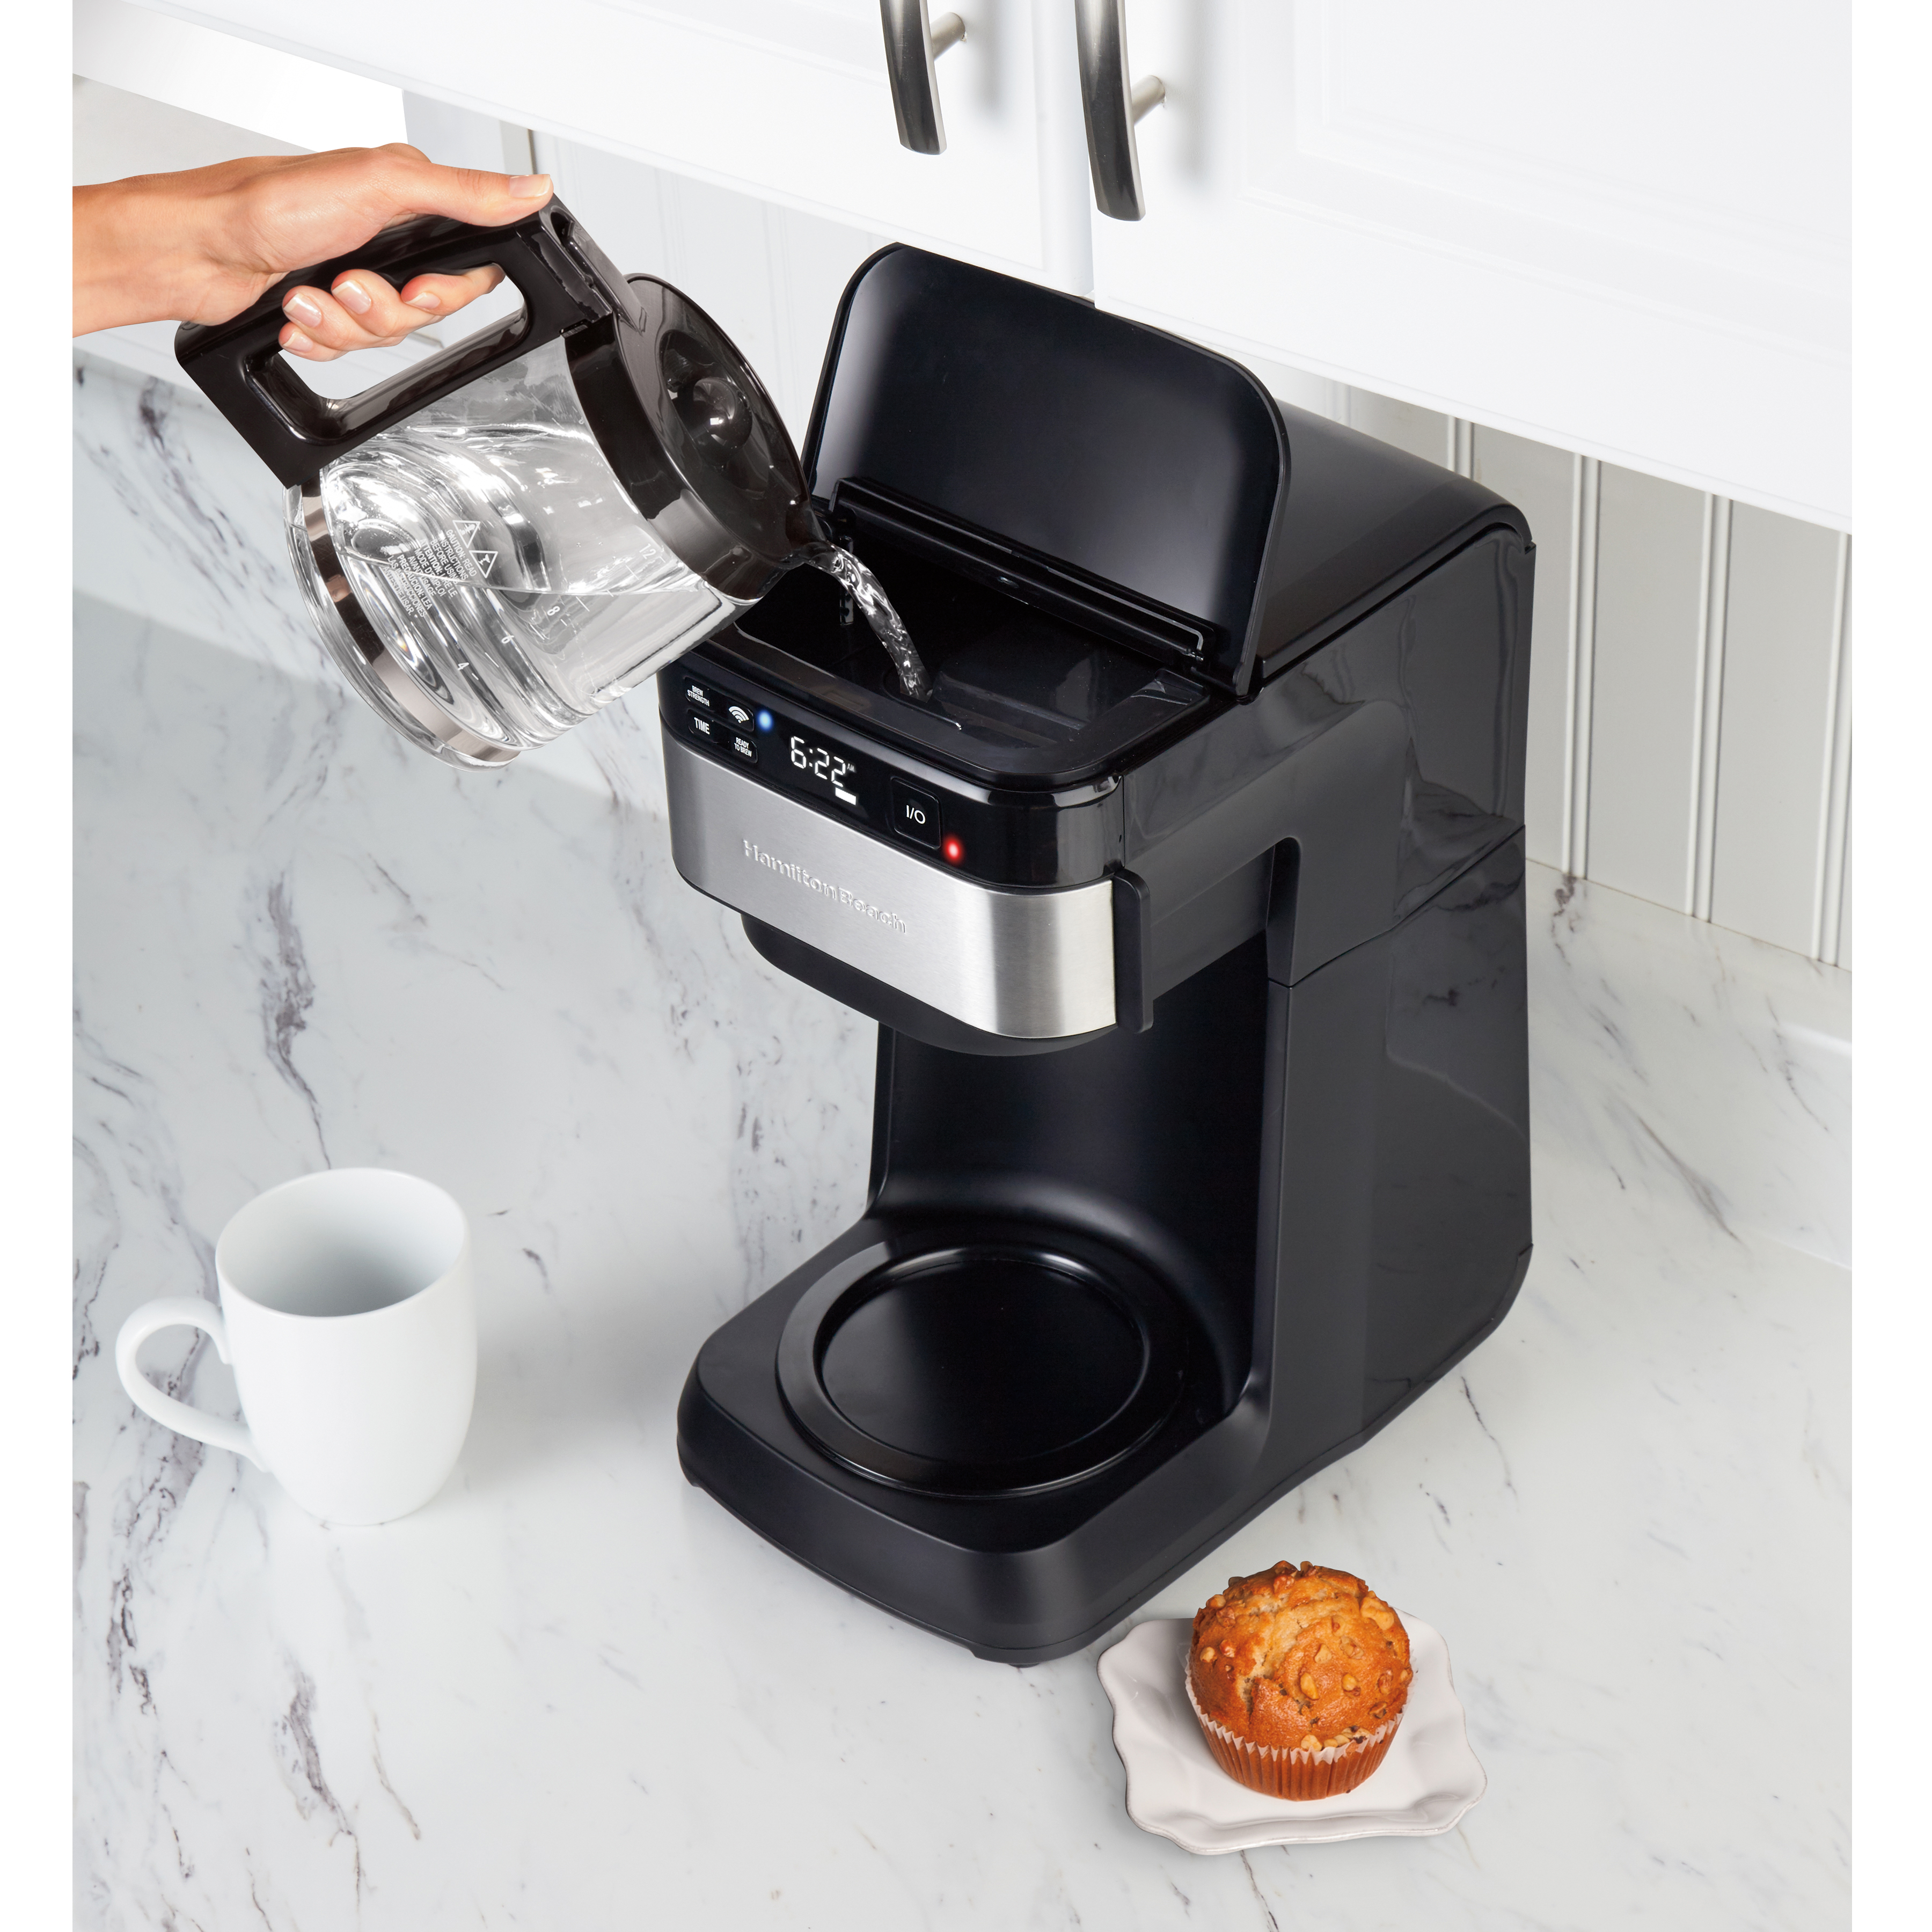 Enter for a Chance to Win a Hamilton Beach® Smart 12 Cup Coffee Maker